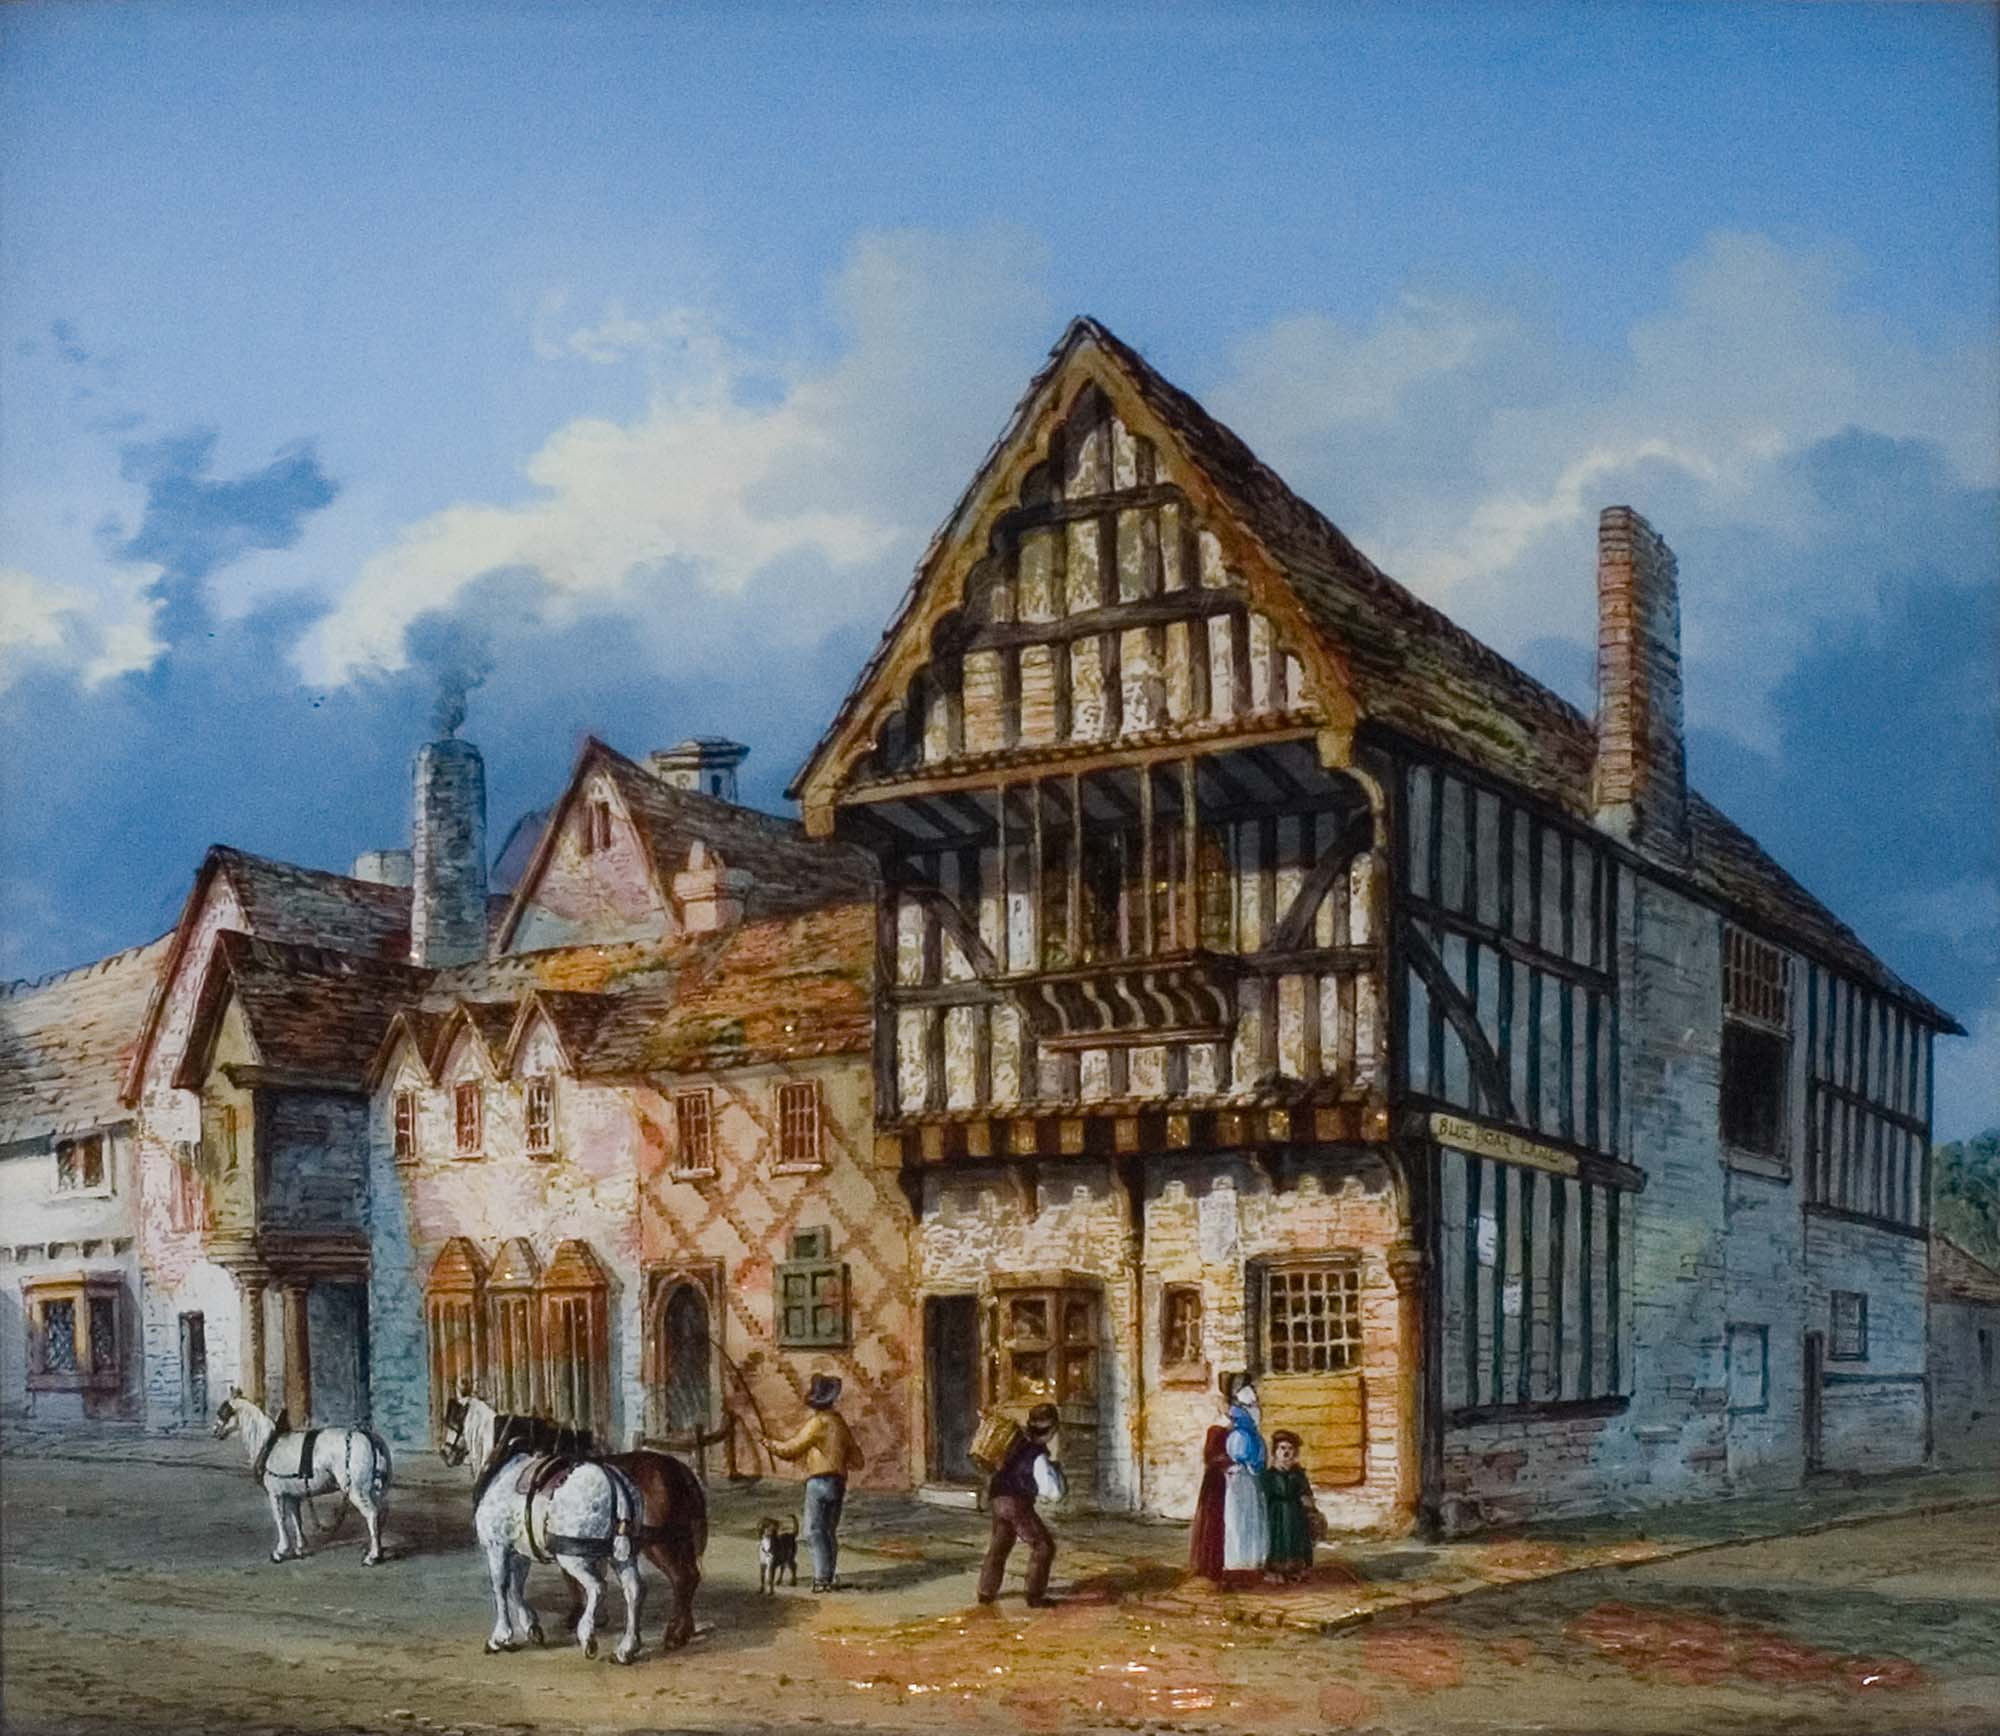 'Blue Boar Inn' T. Brown Chapman, Oil paint on mother of pearl, 1840 - From the collections of Leicester Museums